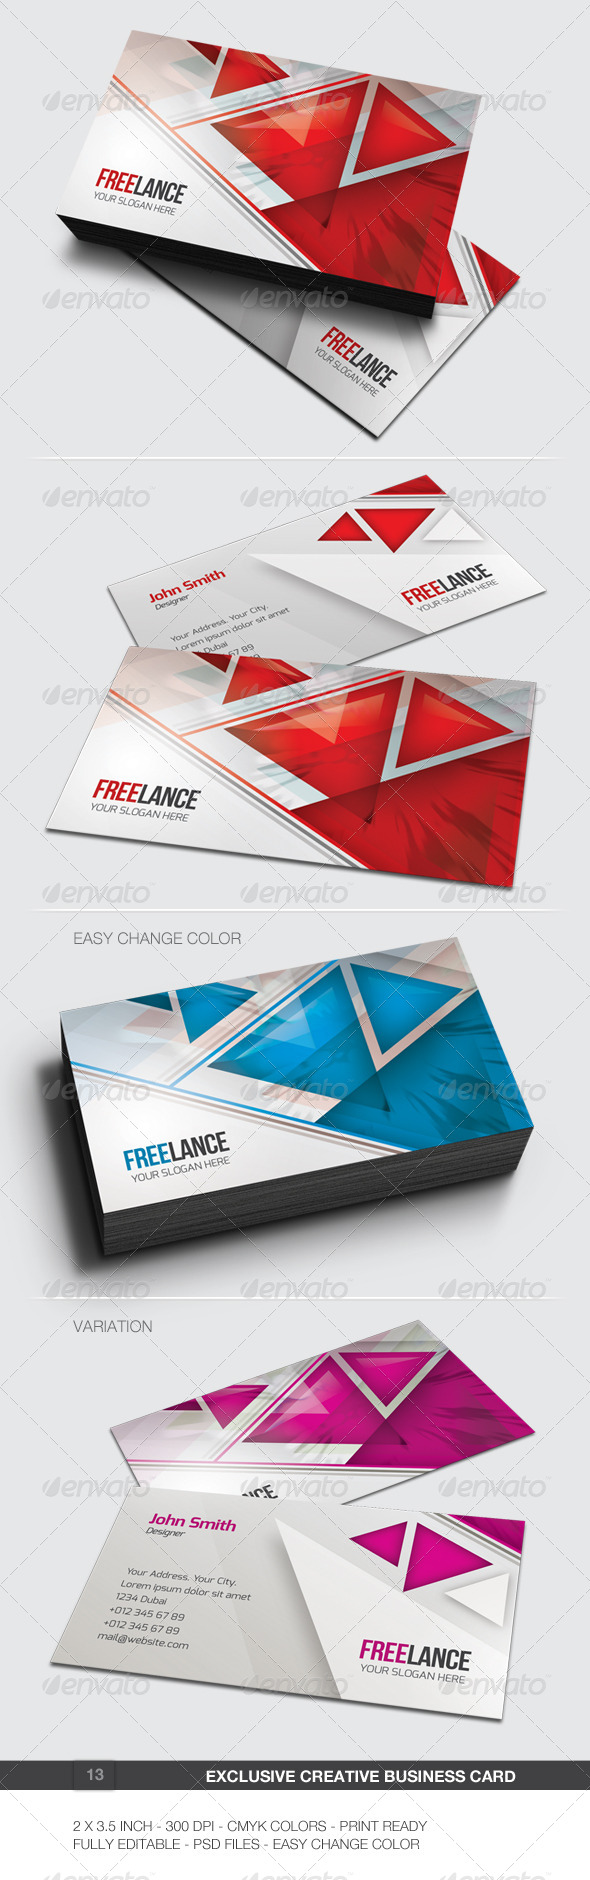 GraphicRiver Exclusive Creative Business Card 13 6087944